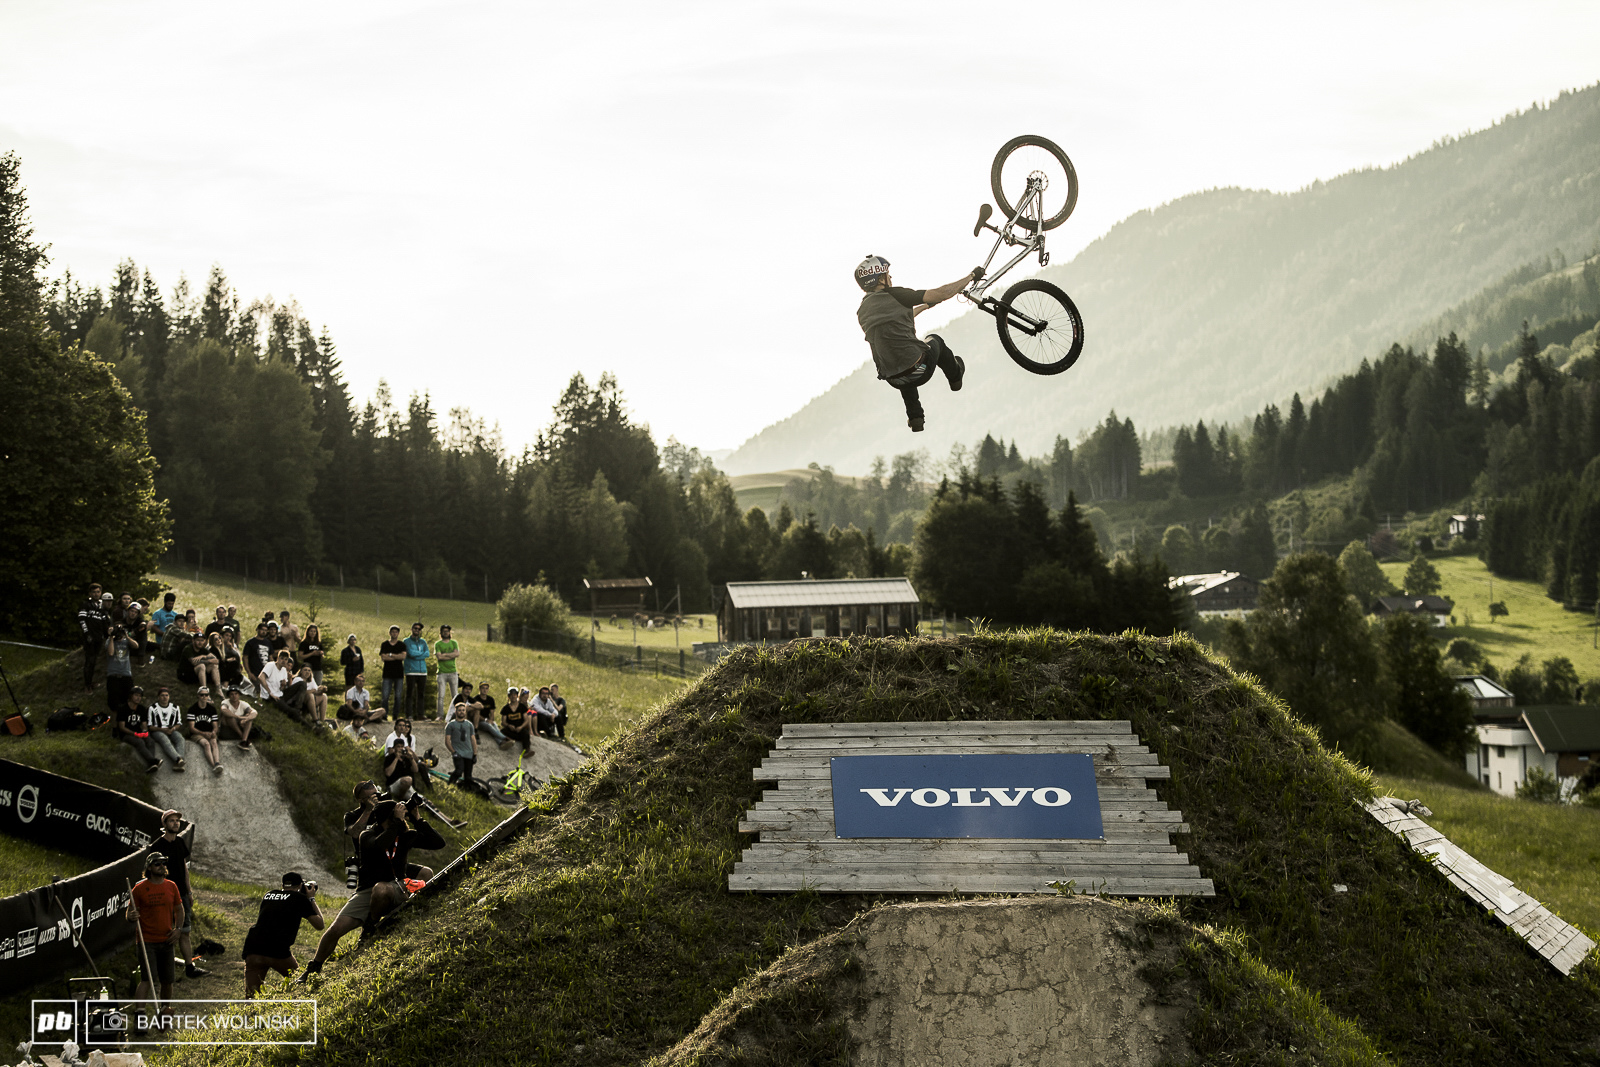 Anton Thelander missed his luck on flip opposite tailwhip and ate dirt hard. Heal fast buddy